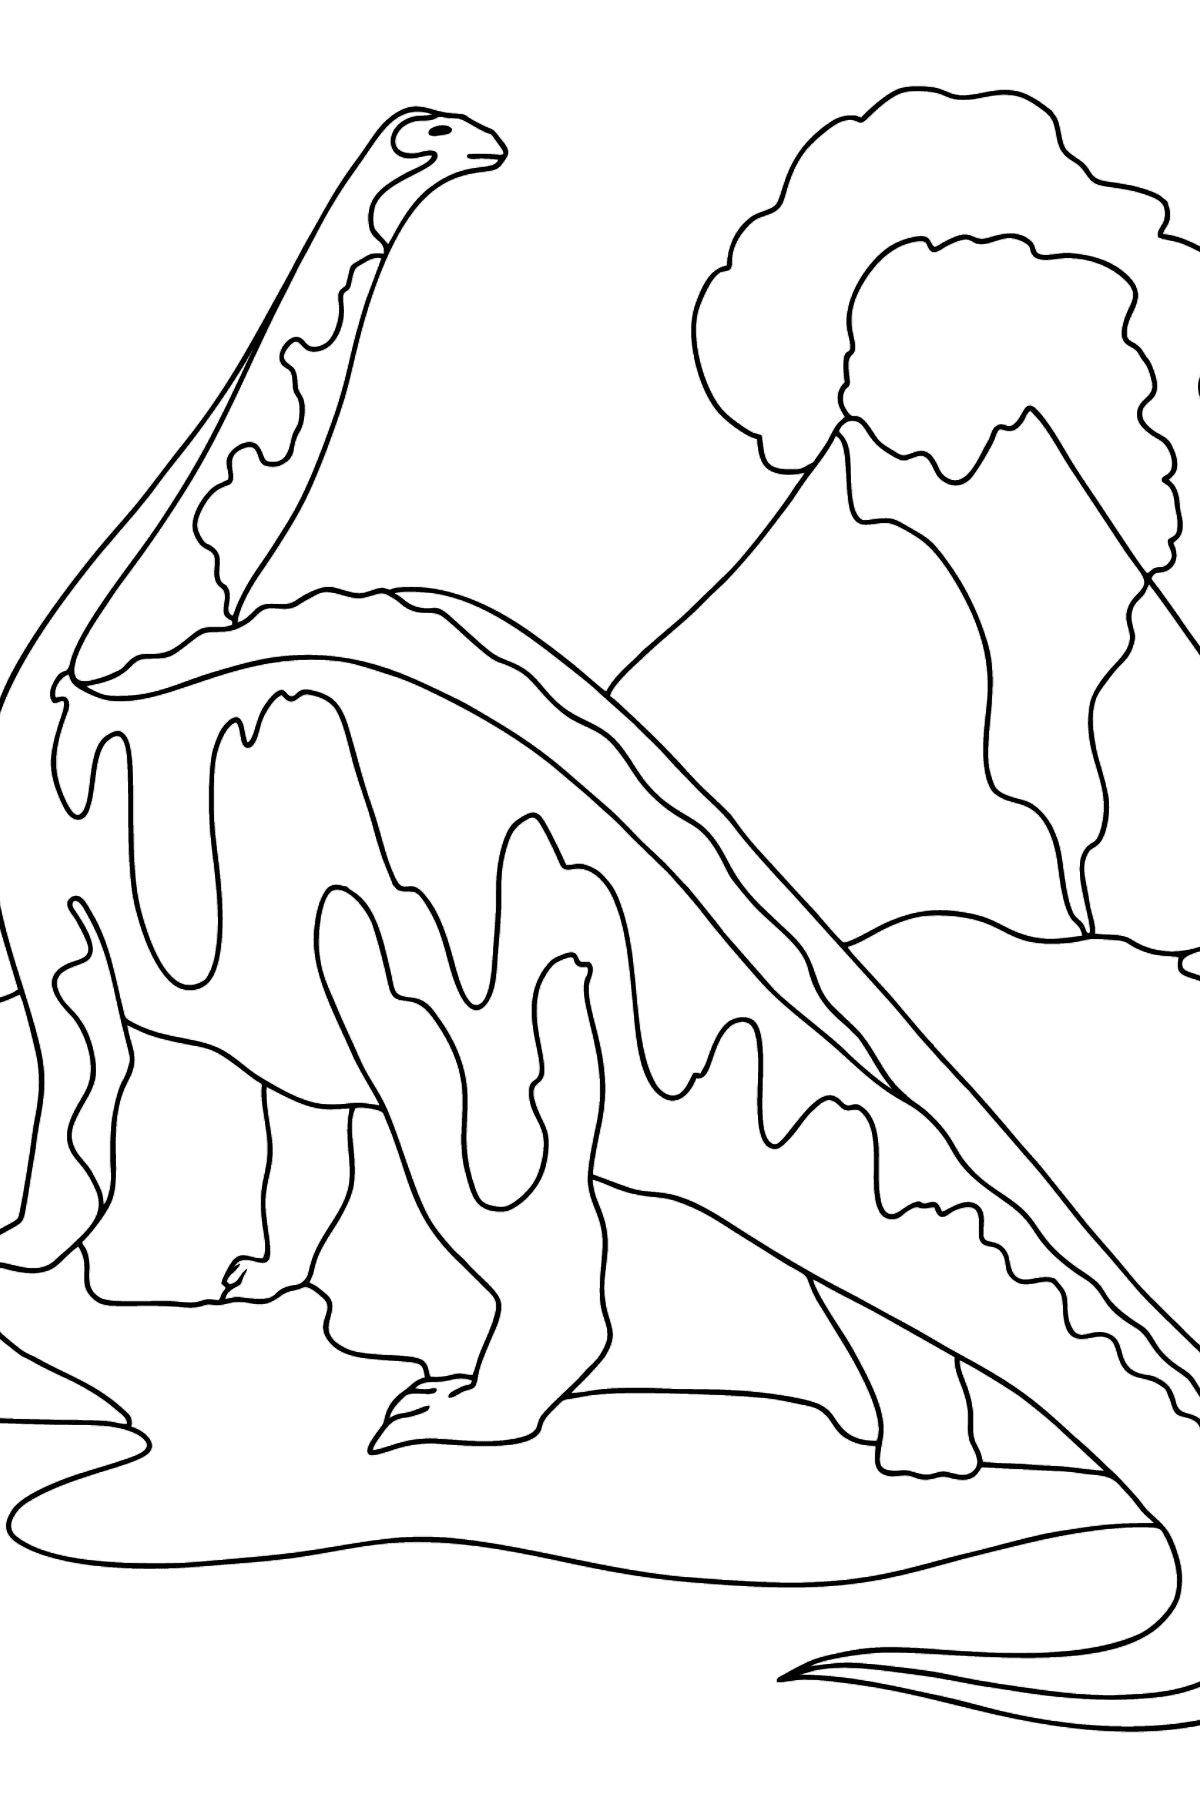 Coloring Page - Brontosaurus or an Elephant-like Dinosaur - Coloring Pages for Kids